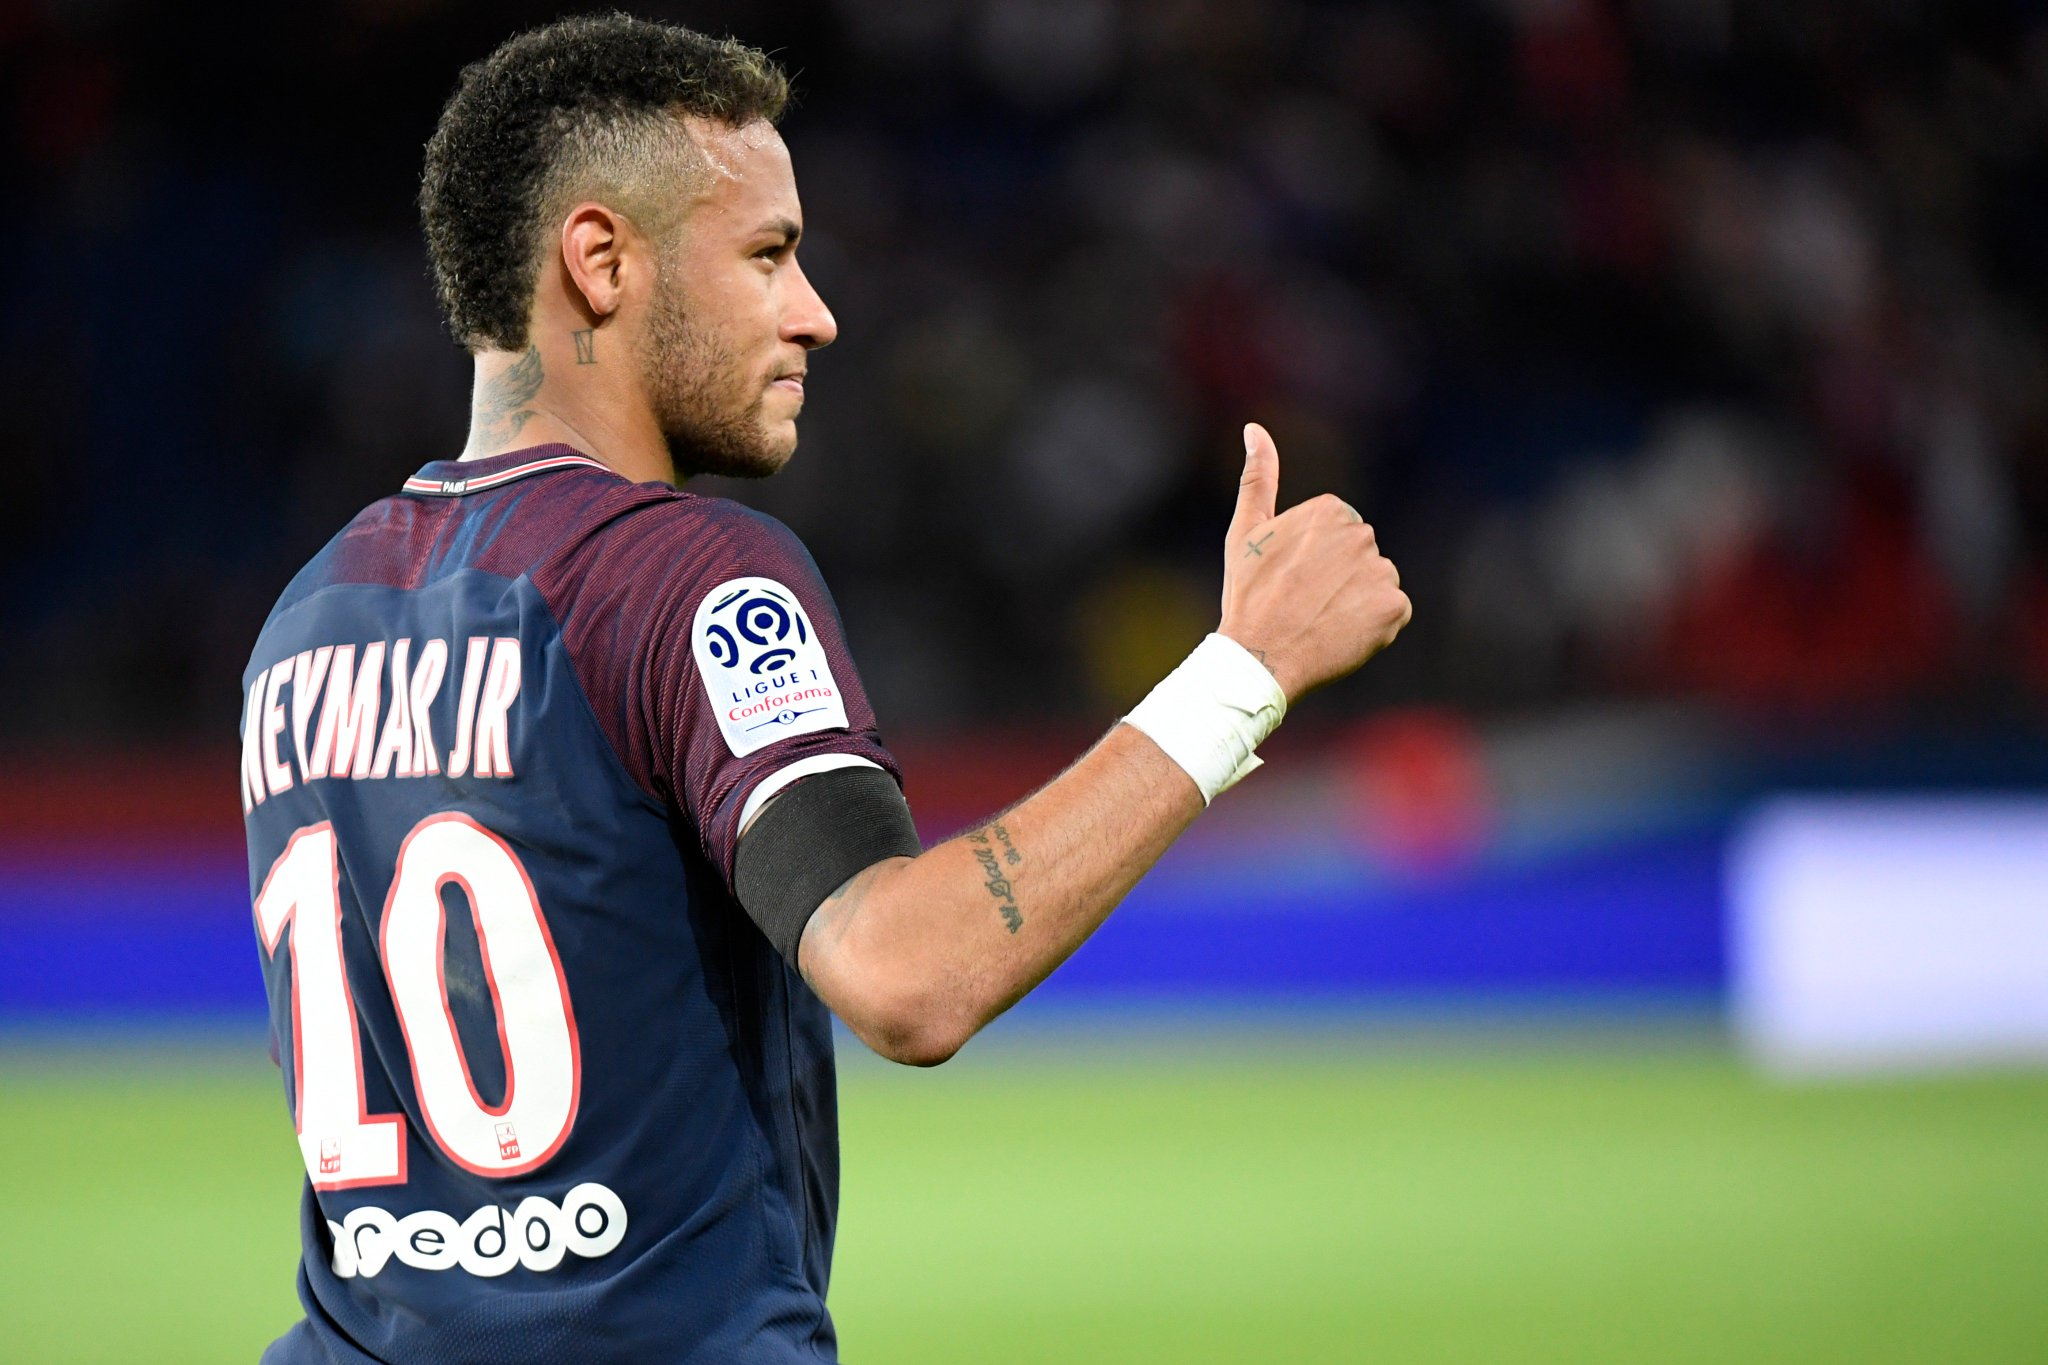 ���� Neymar at Paris:  Games 2 Goals 3 Assists 3  Most exciting player in the #UCL? https://t.co/UJIGVjOkty